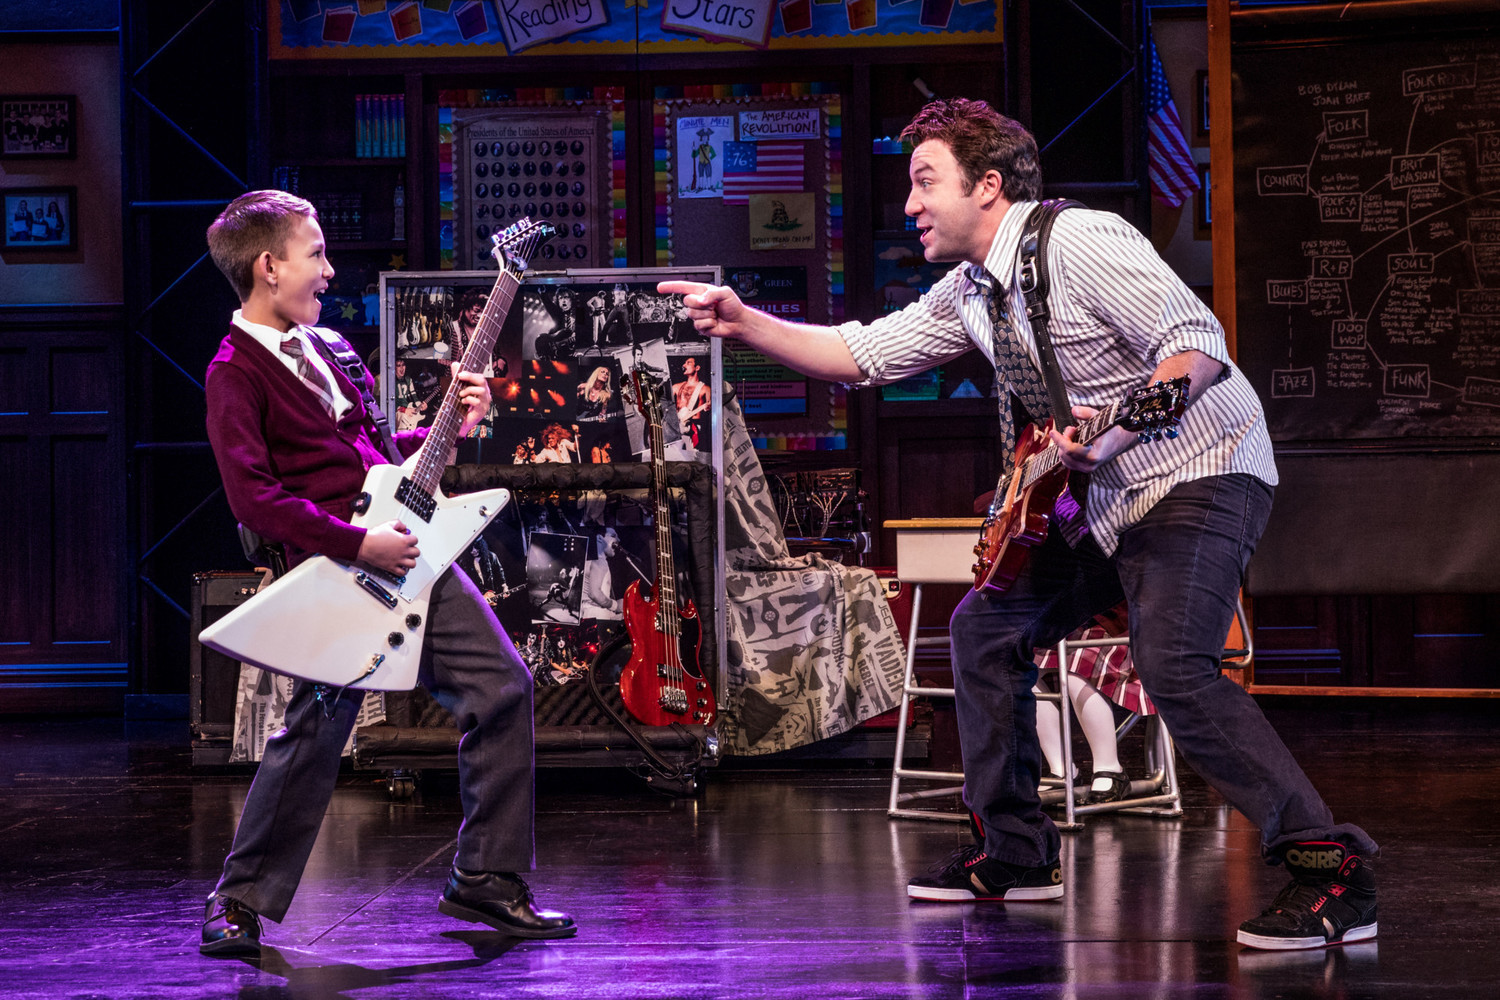 BWW Review: SCHOOL OF ROCK, Well, Rocks at Clowes Memorial Hall